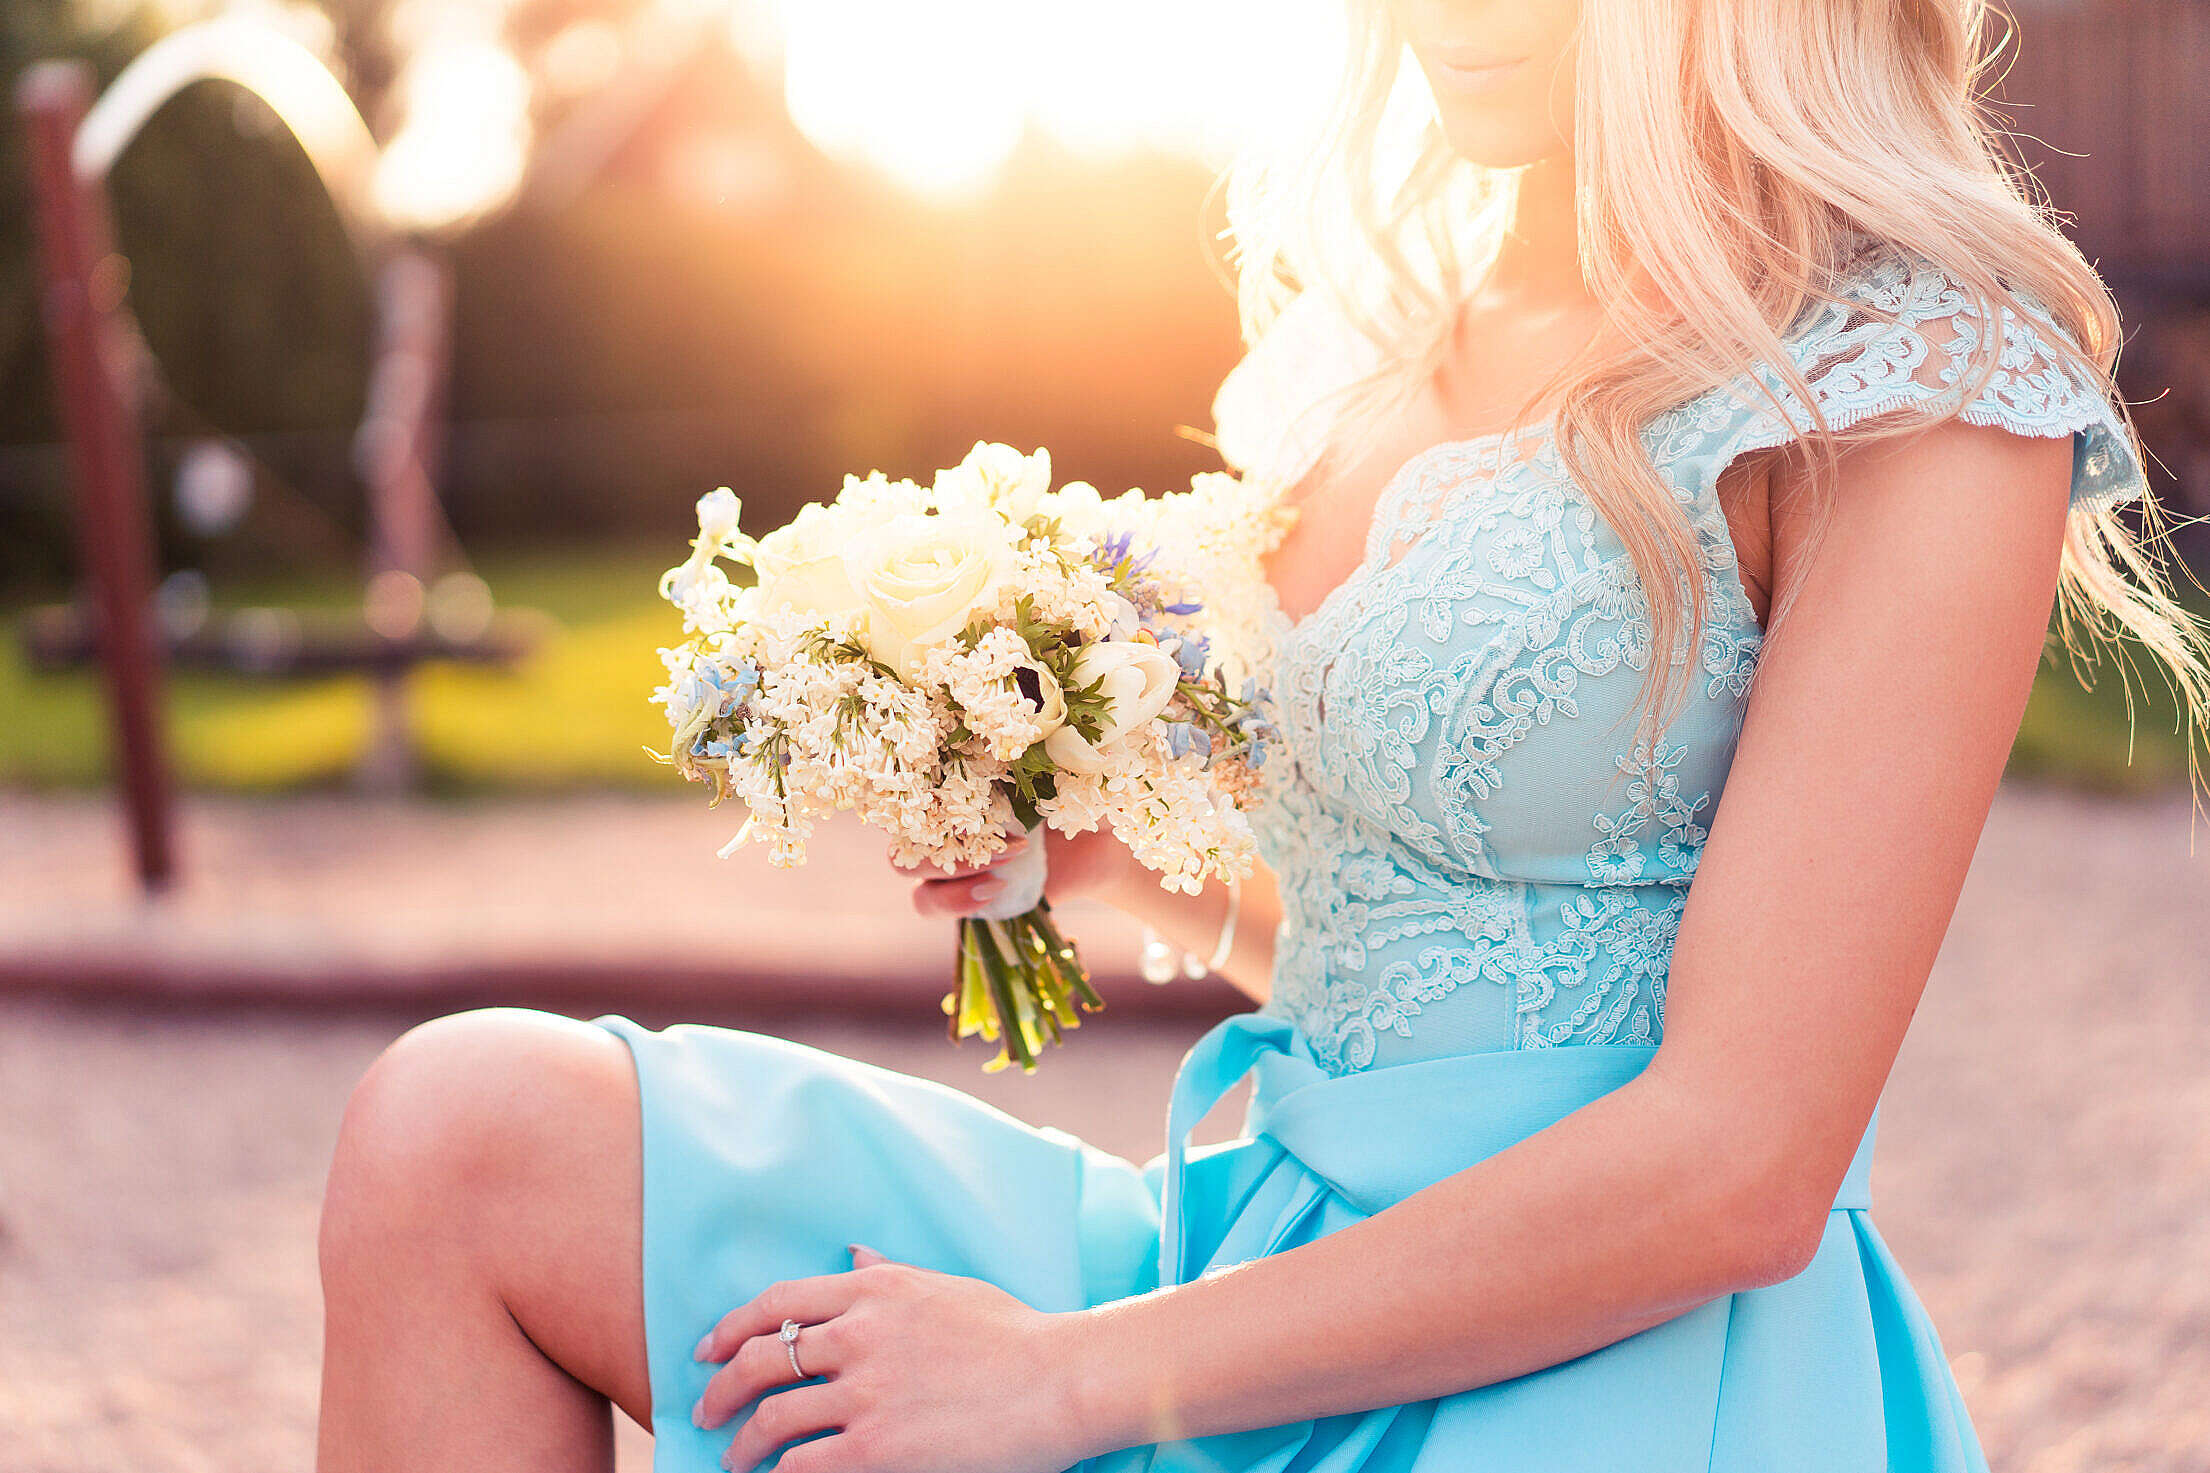 Bridesmaid in a Blue Dress Free Stock Photo